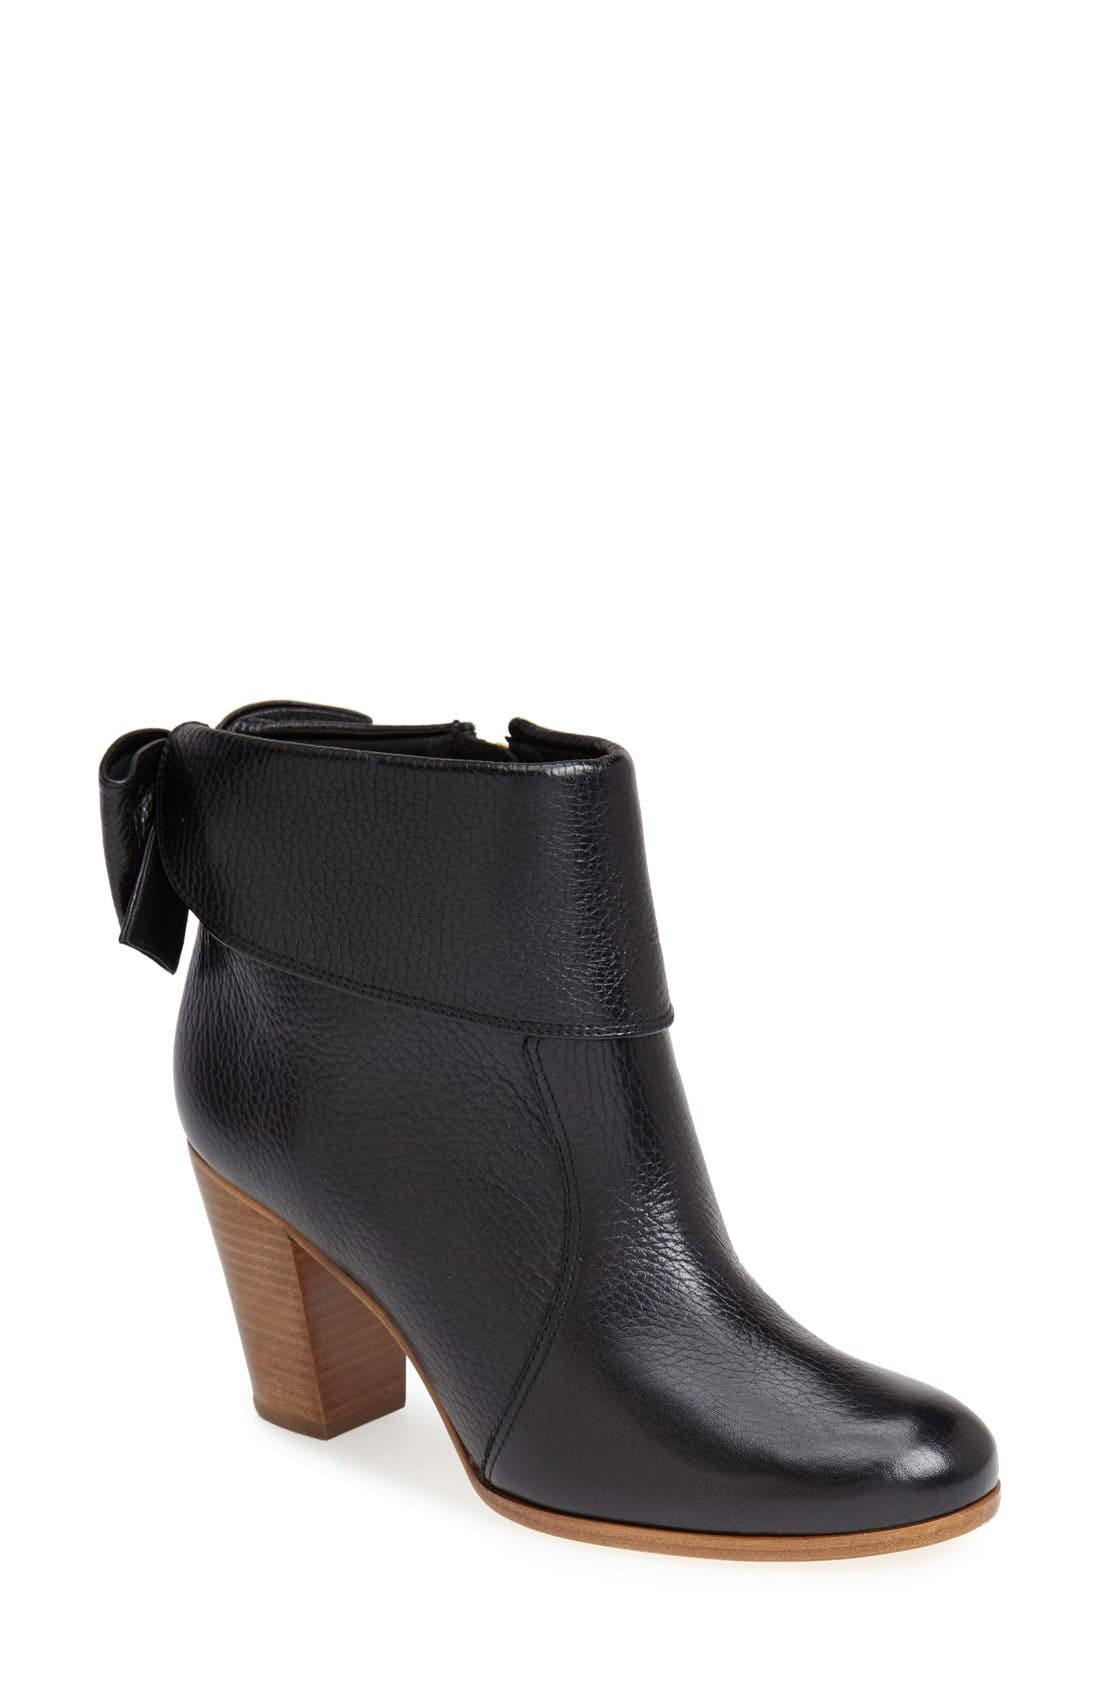 Alternate Image 1 Selected - kate spade new york 'lanise' leather boot (Women)